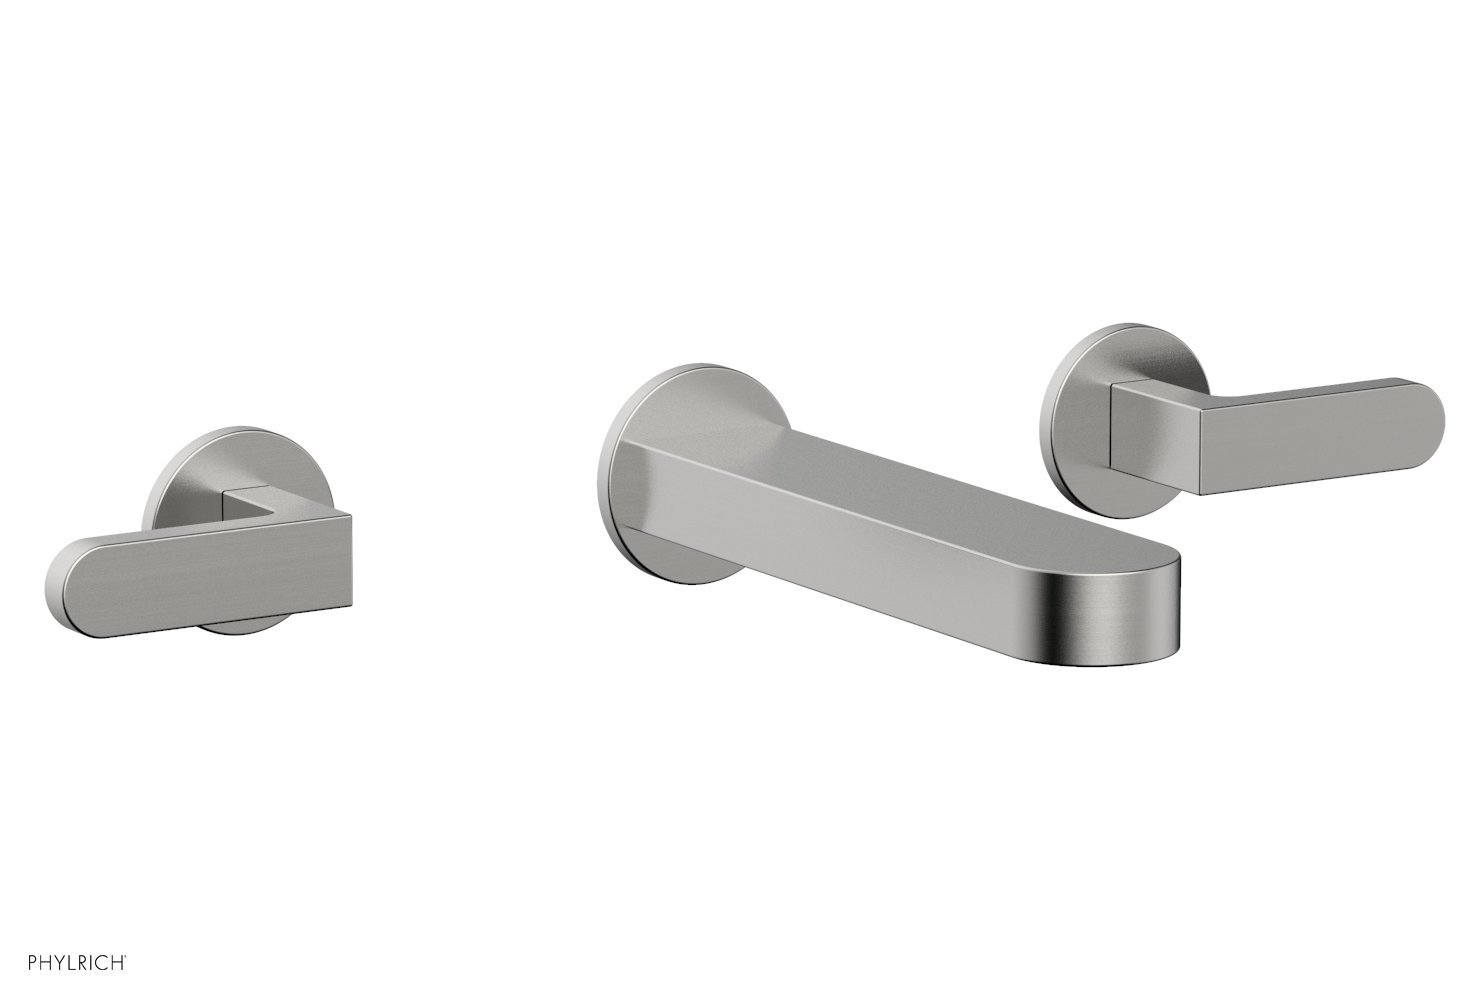 Phylrich 183-12-26D ROND Wall Lavatory Set - Lever Handles - Satin Chrome